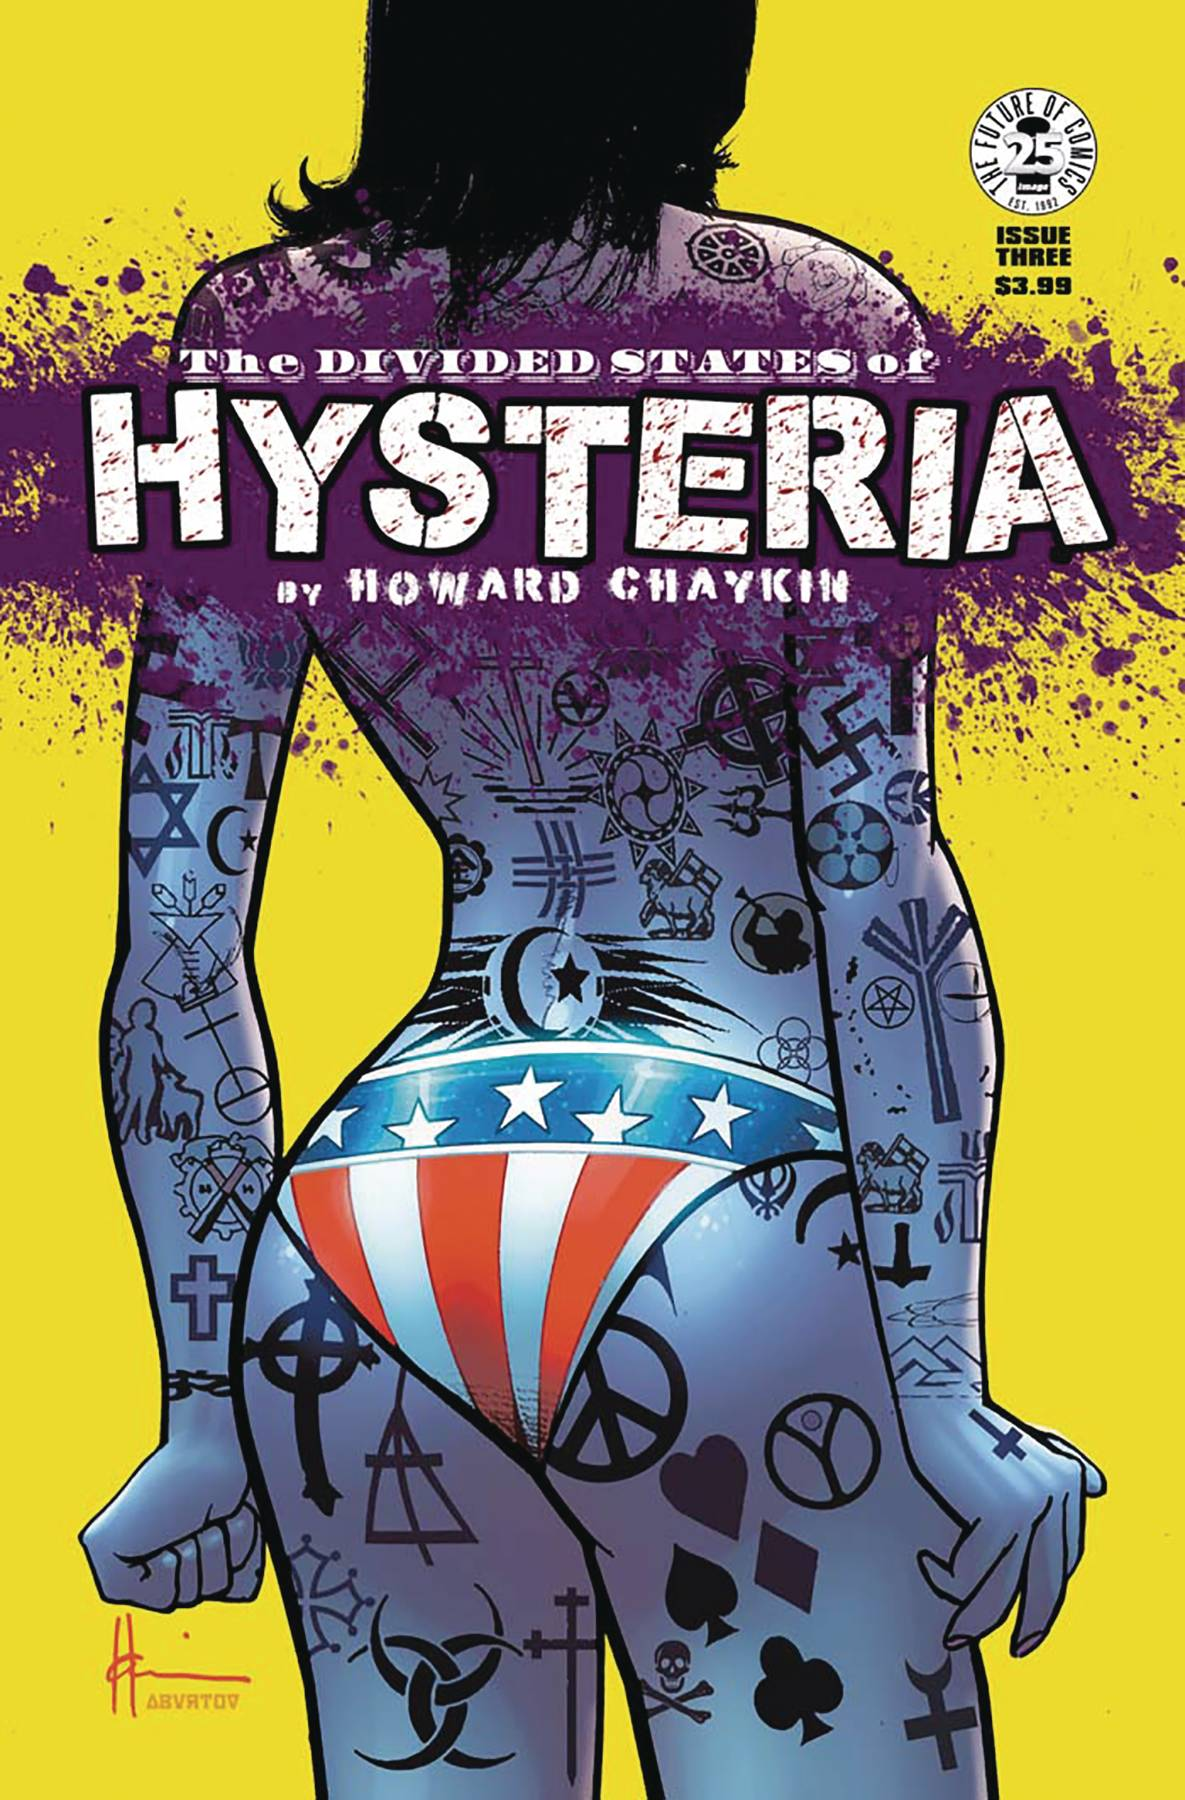 DIVIDED STATES OF HYSTERIA#3